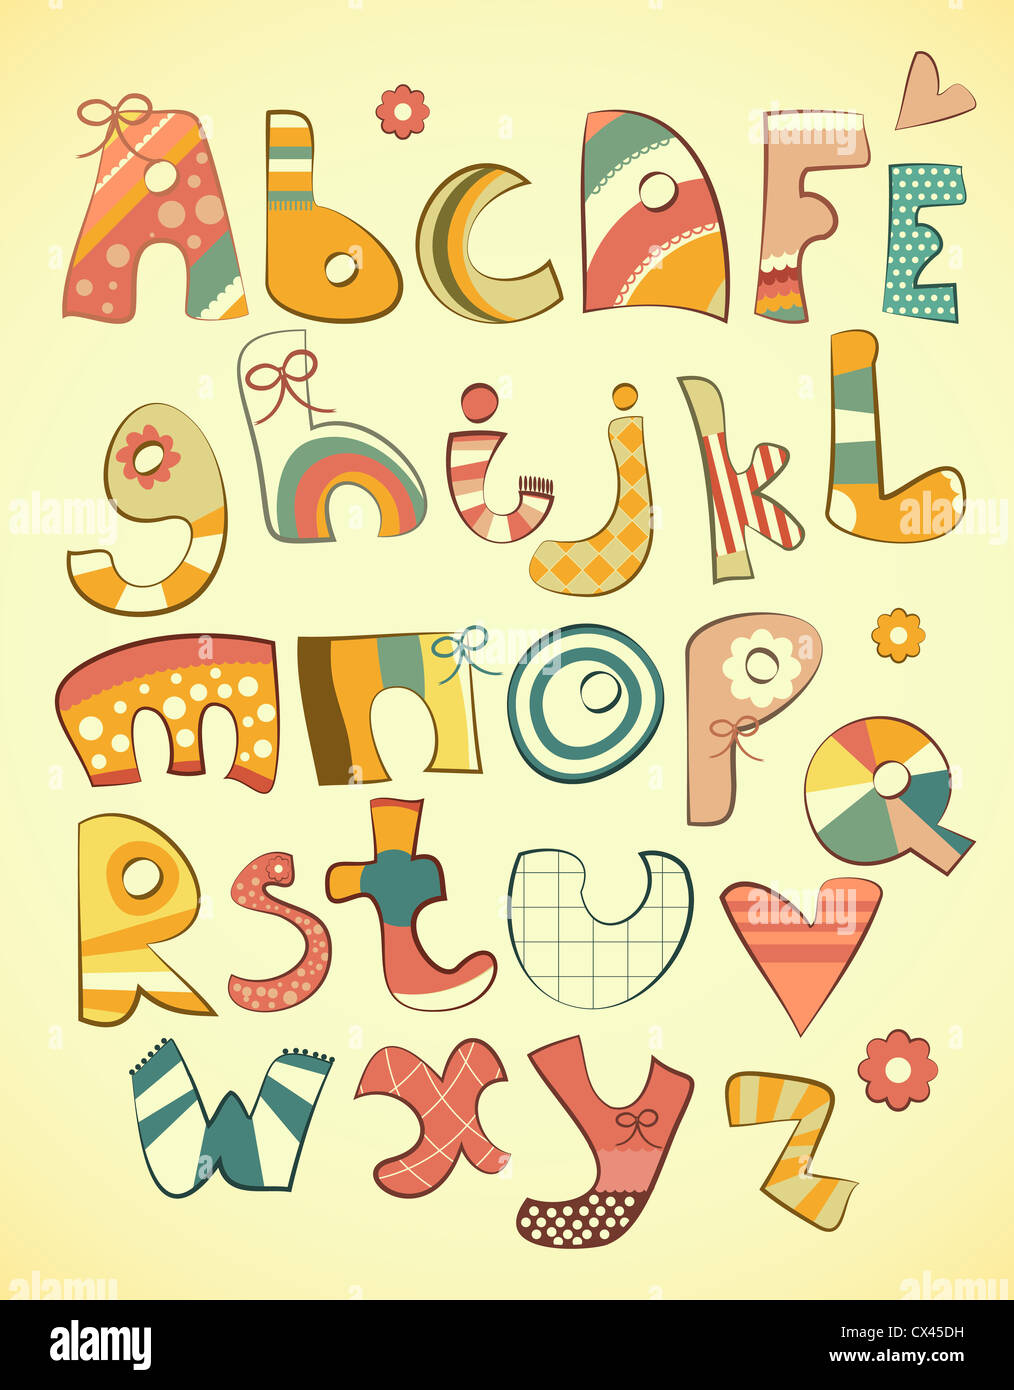 Design de l'alphabet en fun style doodle lettres A-Z - illustration Photo Stock